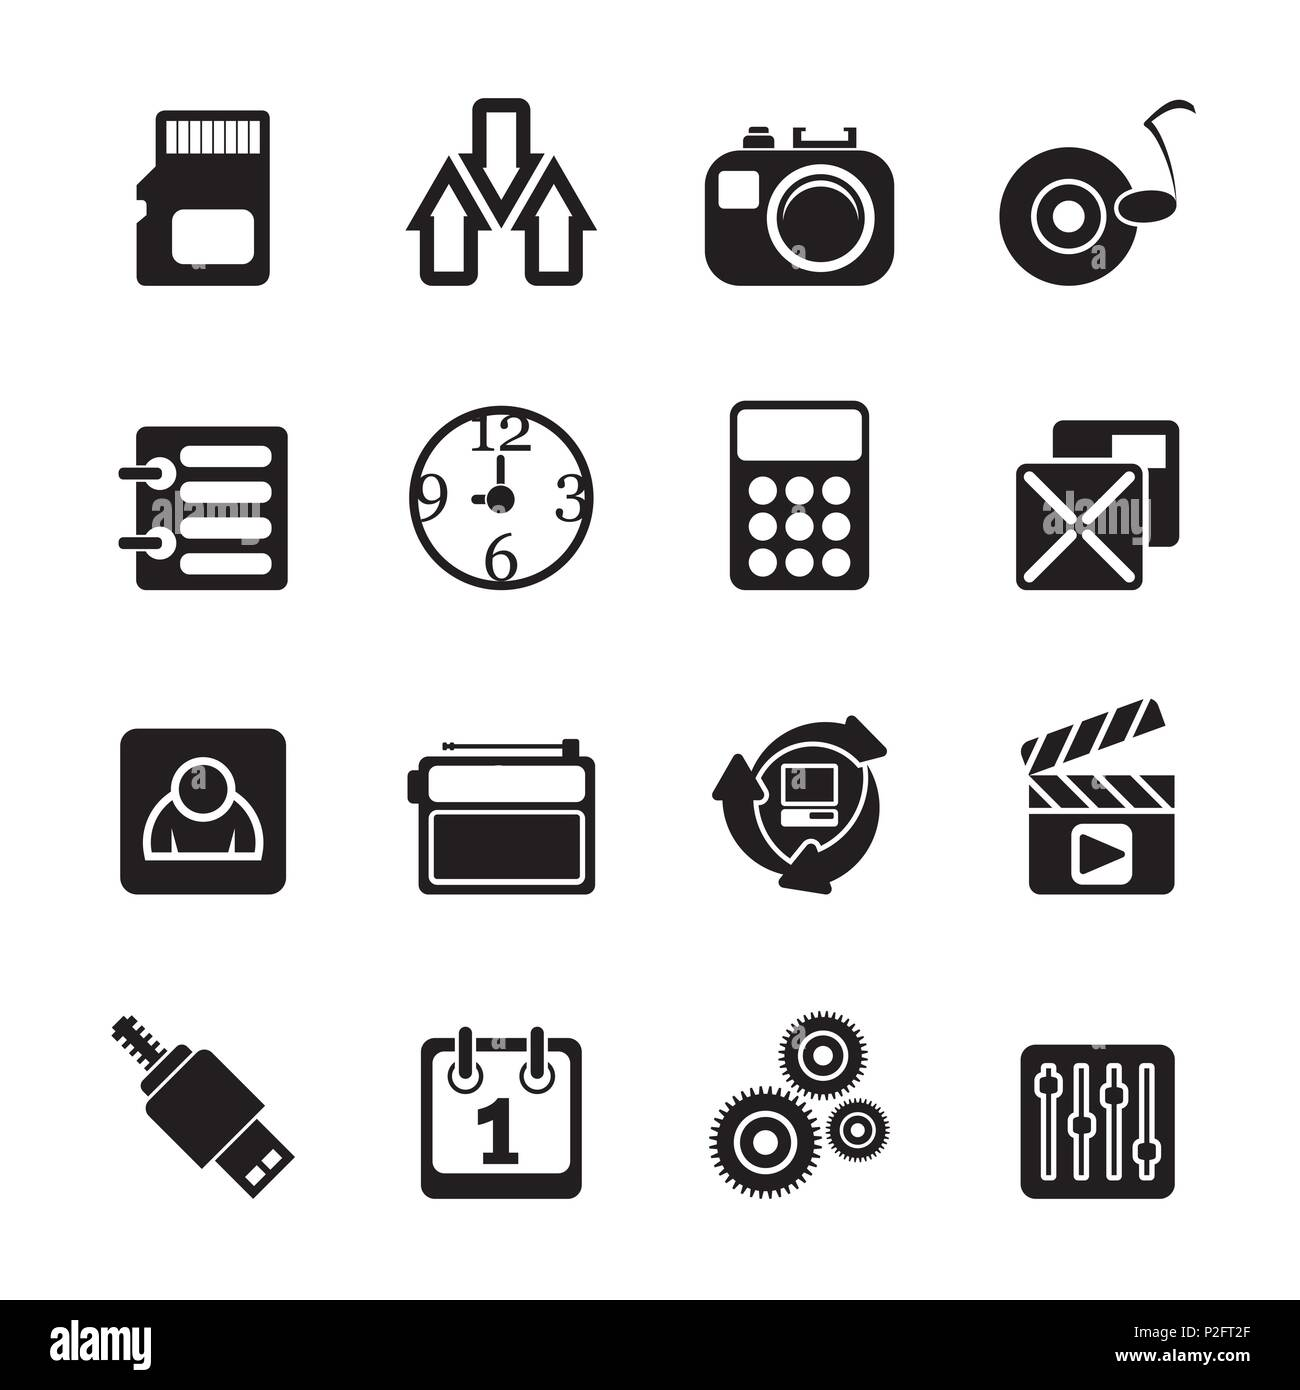 Silhouette phone  performance, internet and office icons - vector icon set - Stock Image